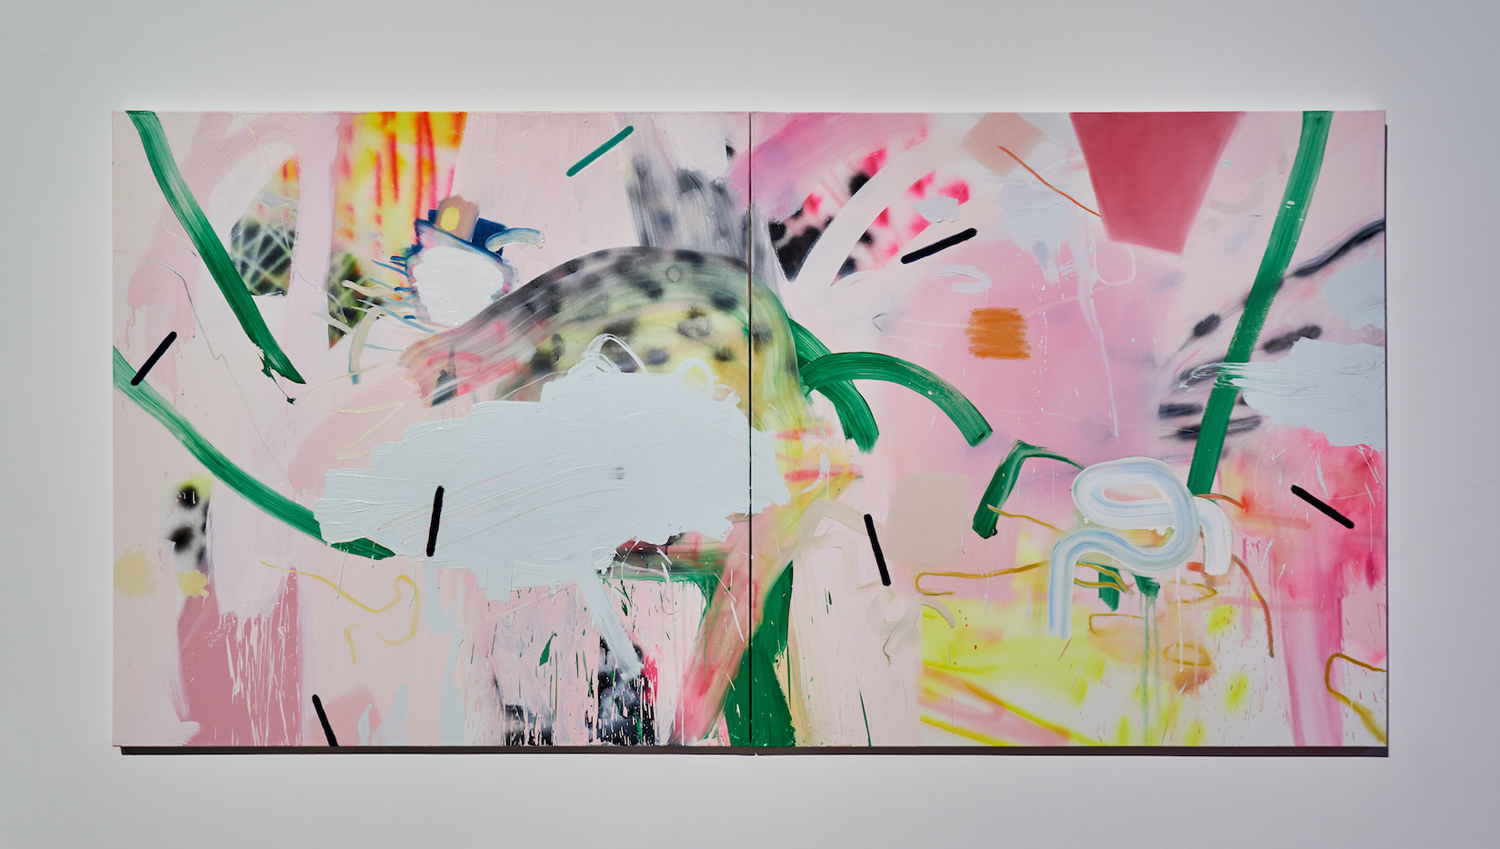 """Jennifer Lefort ,  Unavoidable Shifts , 2016, Oil and spray paint on canvas, 60"""" x 120"""" (152,4 x 304,8 cm)"""